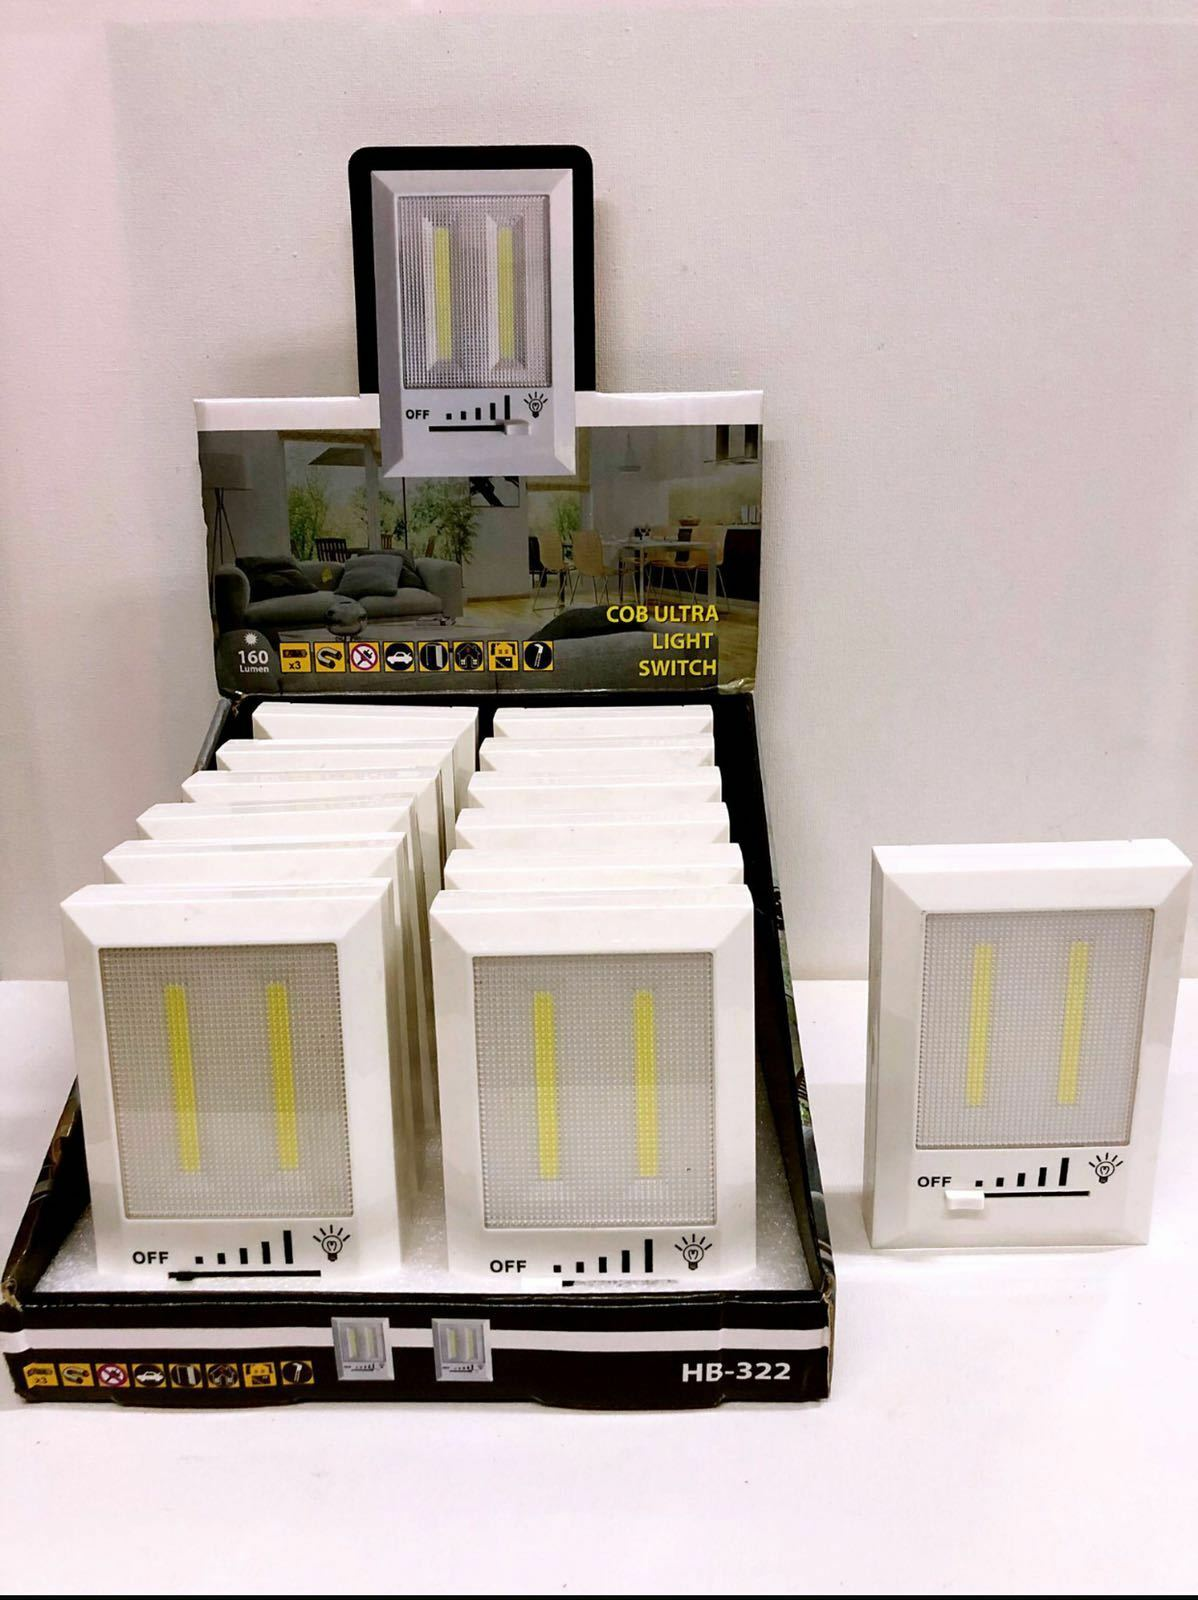 LUCE LED COB INTERRUTTORE SWITCH DIMMERABILE ADESIVO DA ARMADIO BATTERIA